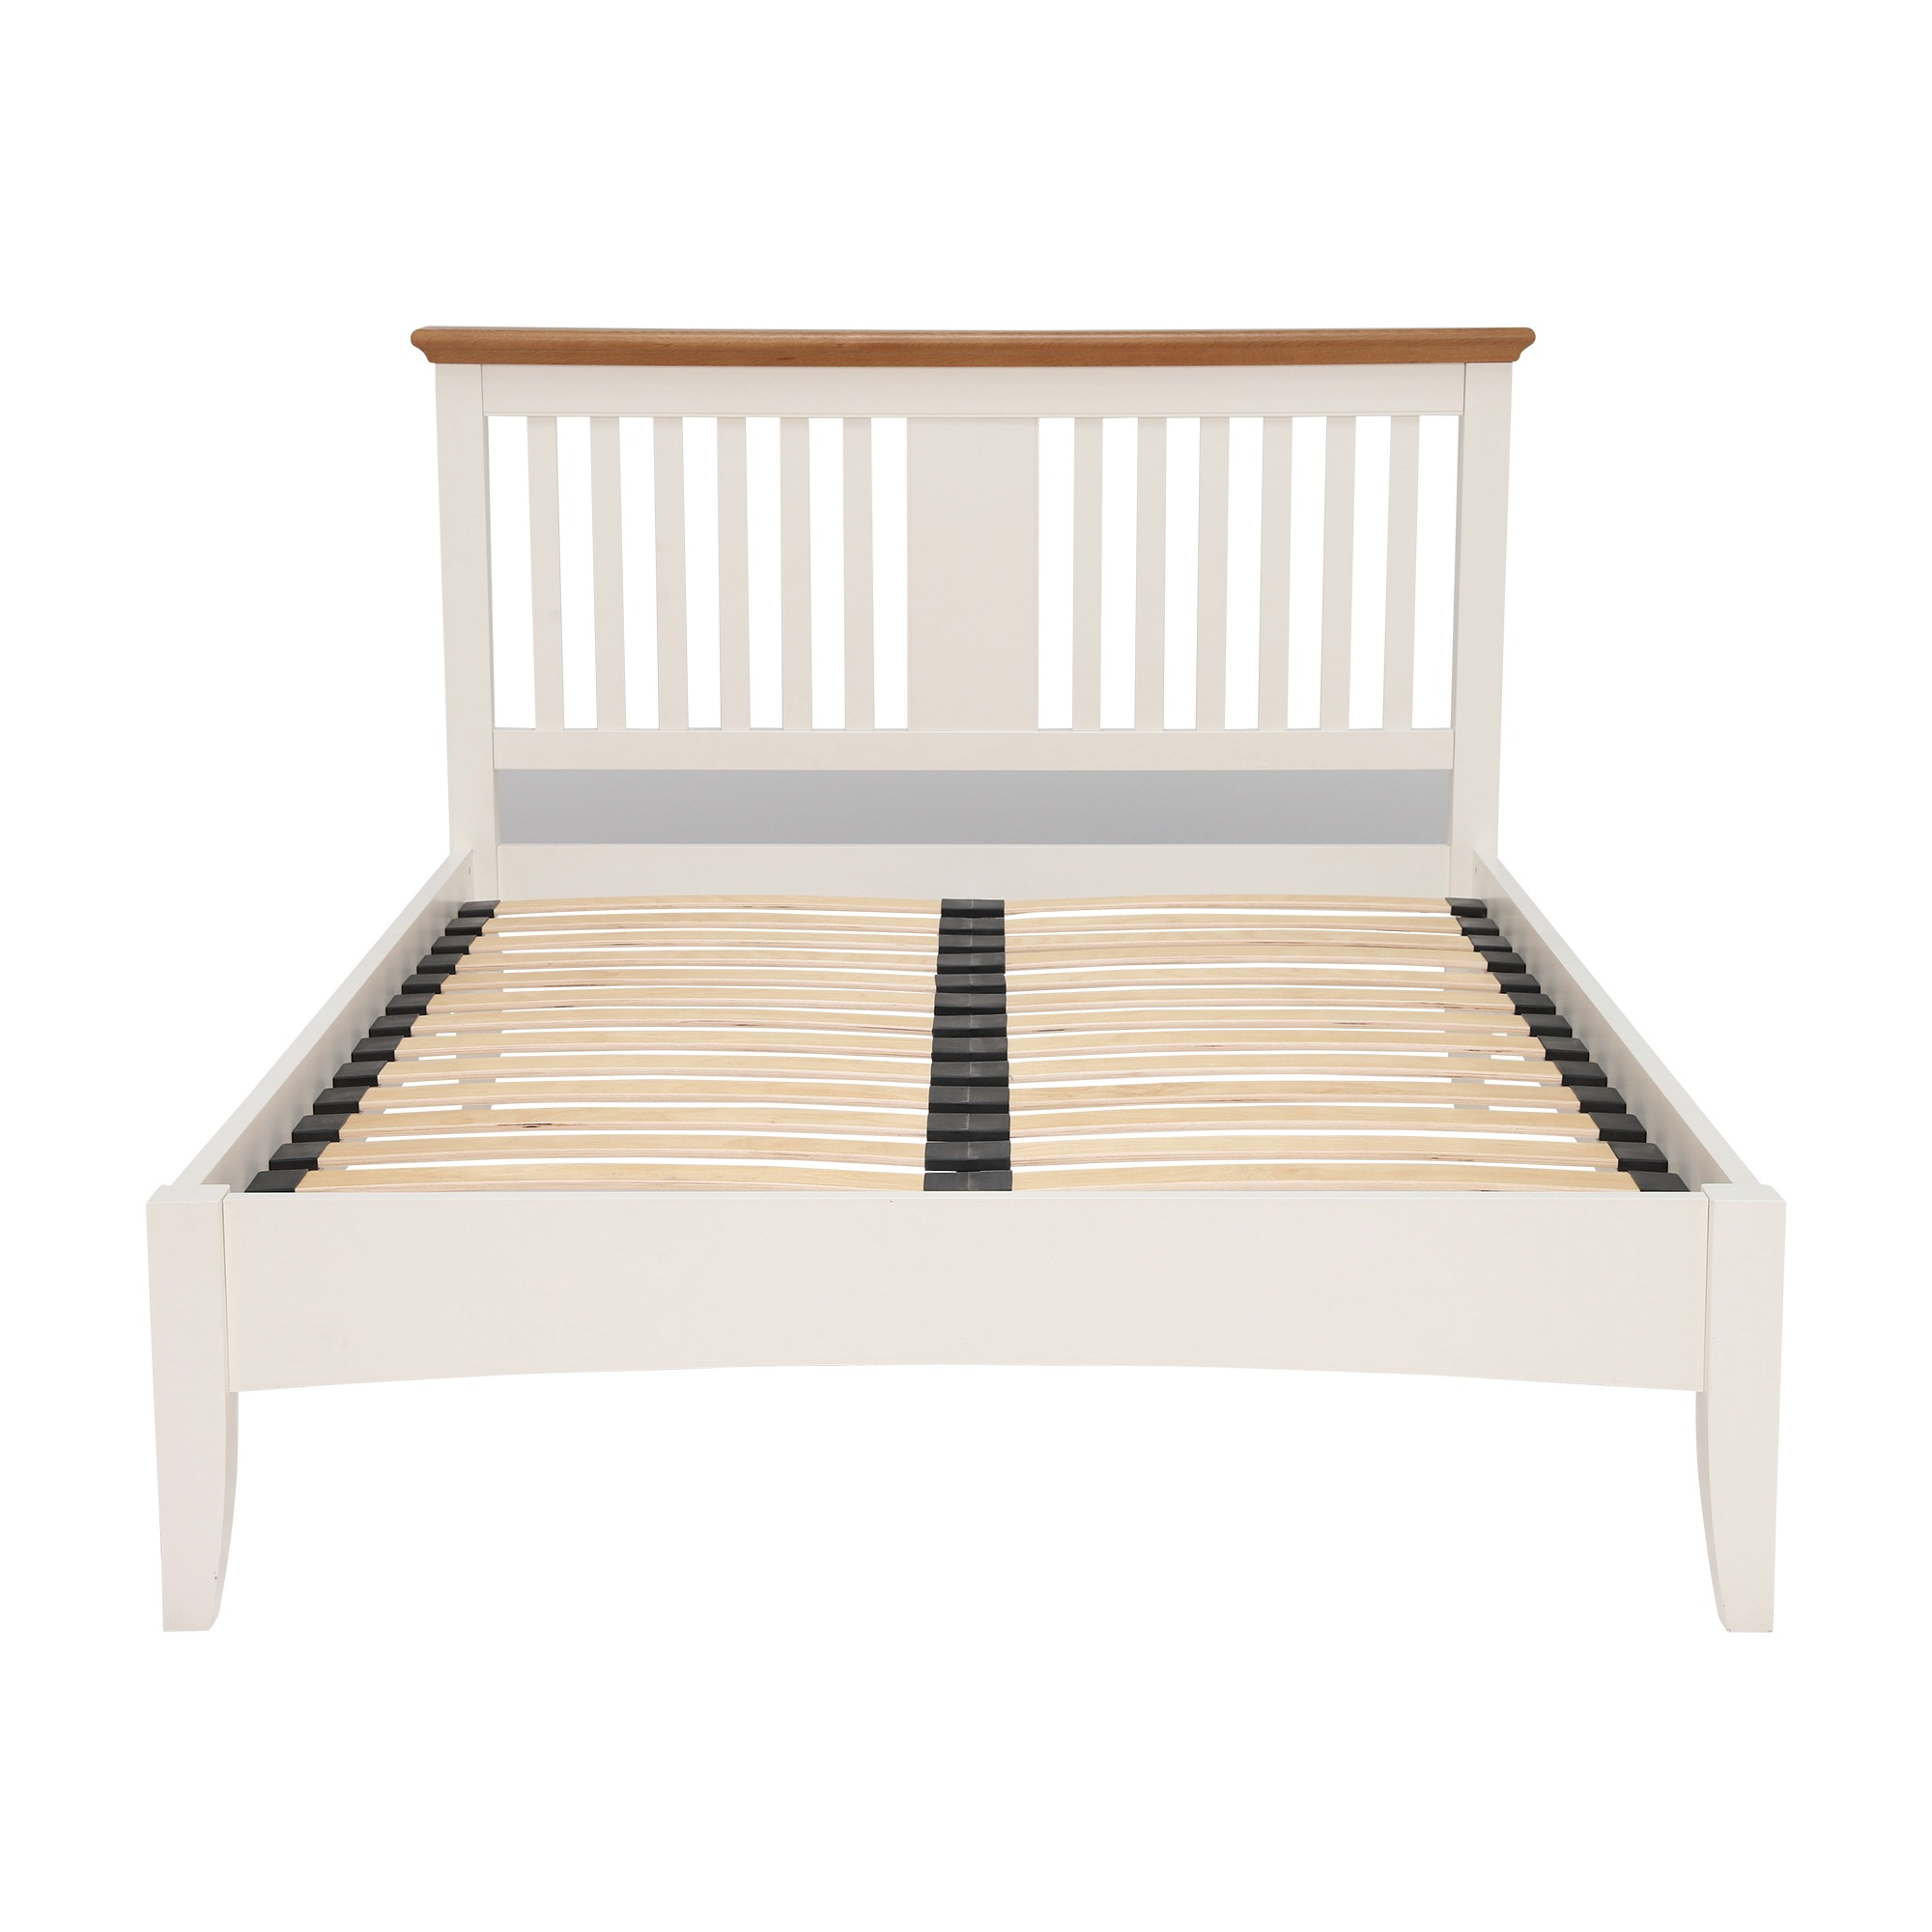 KYRA TWOTONE BEDFRAME - END DETAIL